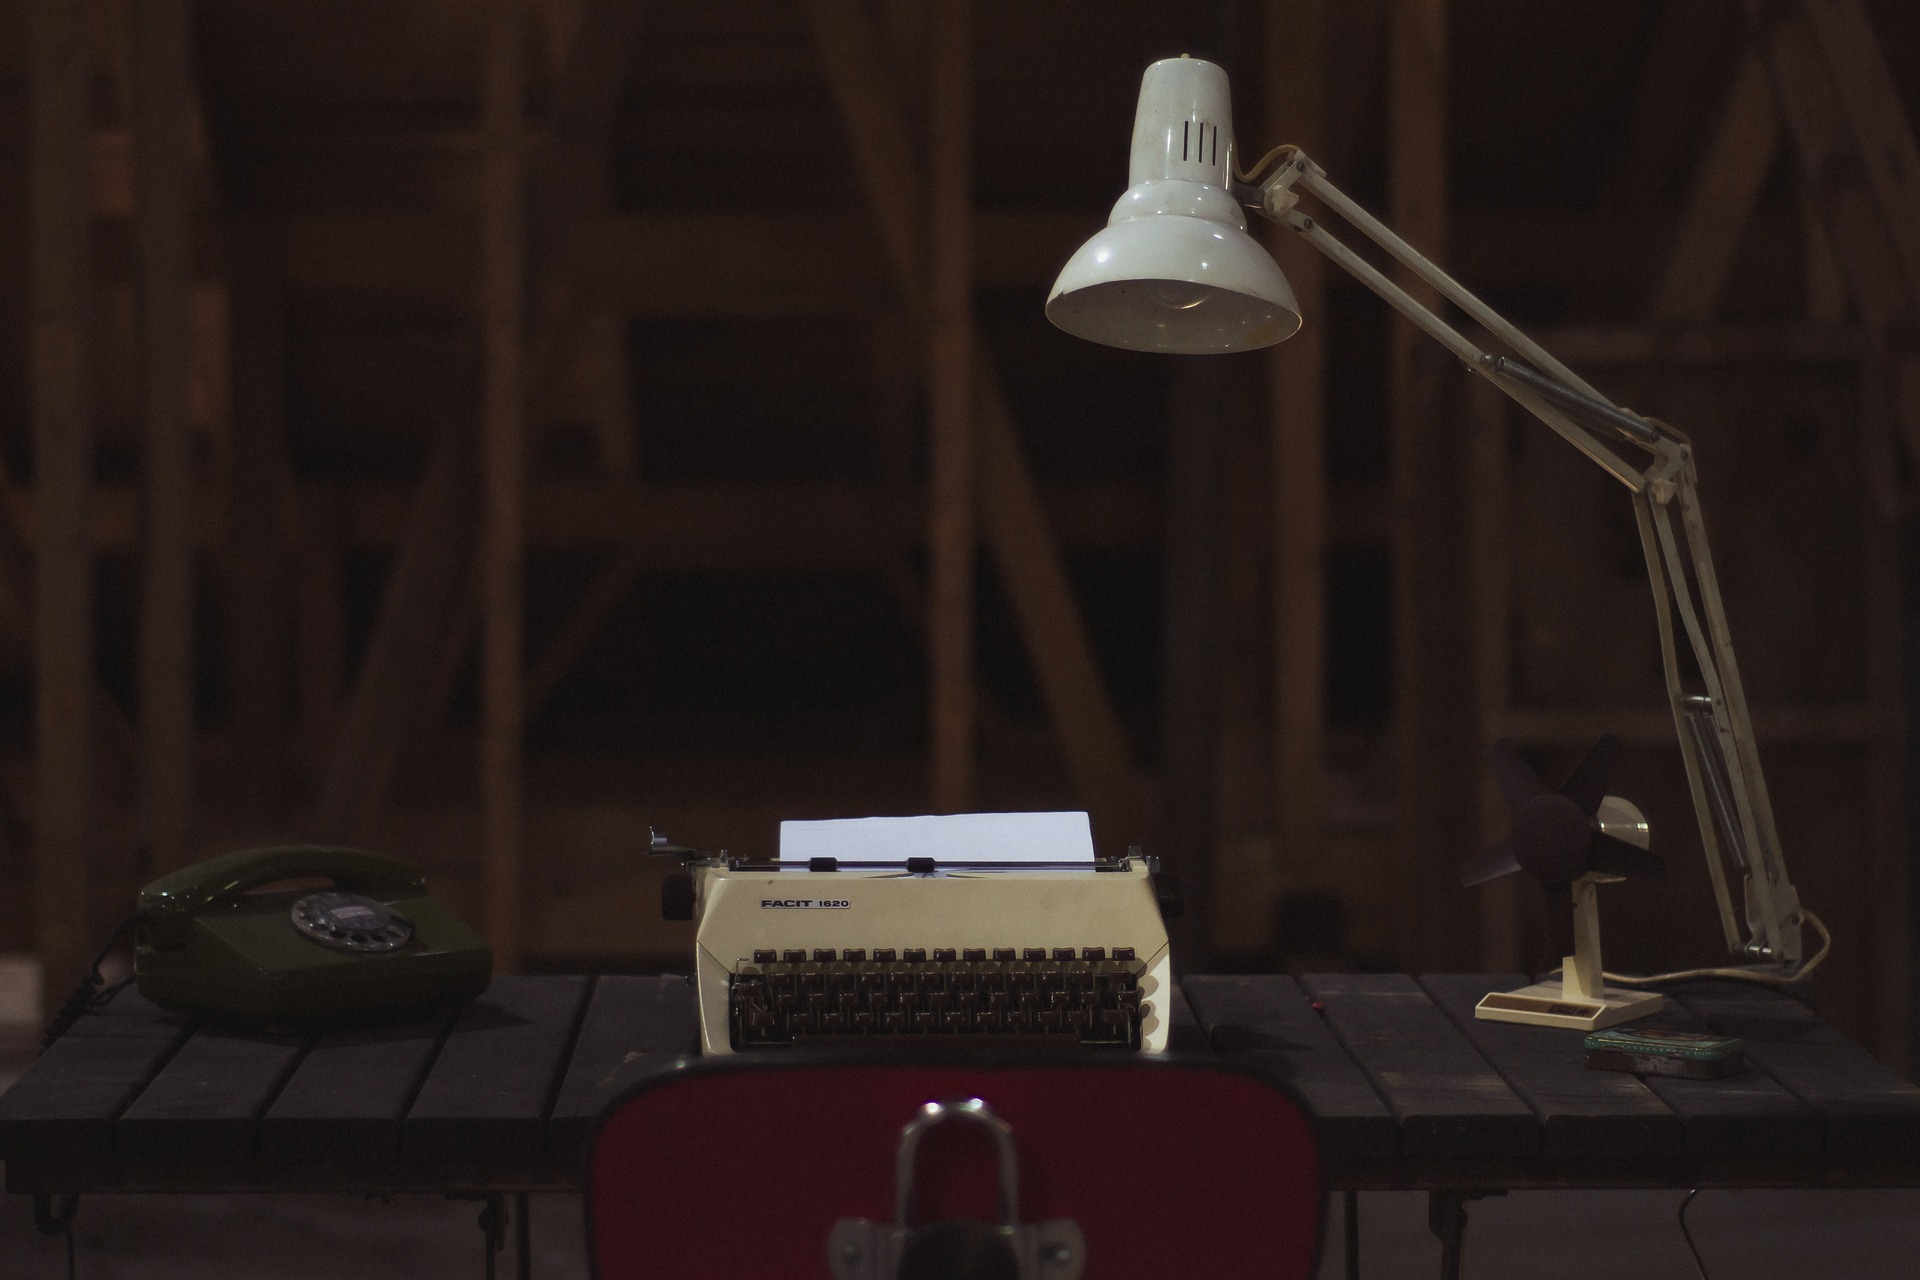 a typewriter on a table with a lamp overhead